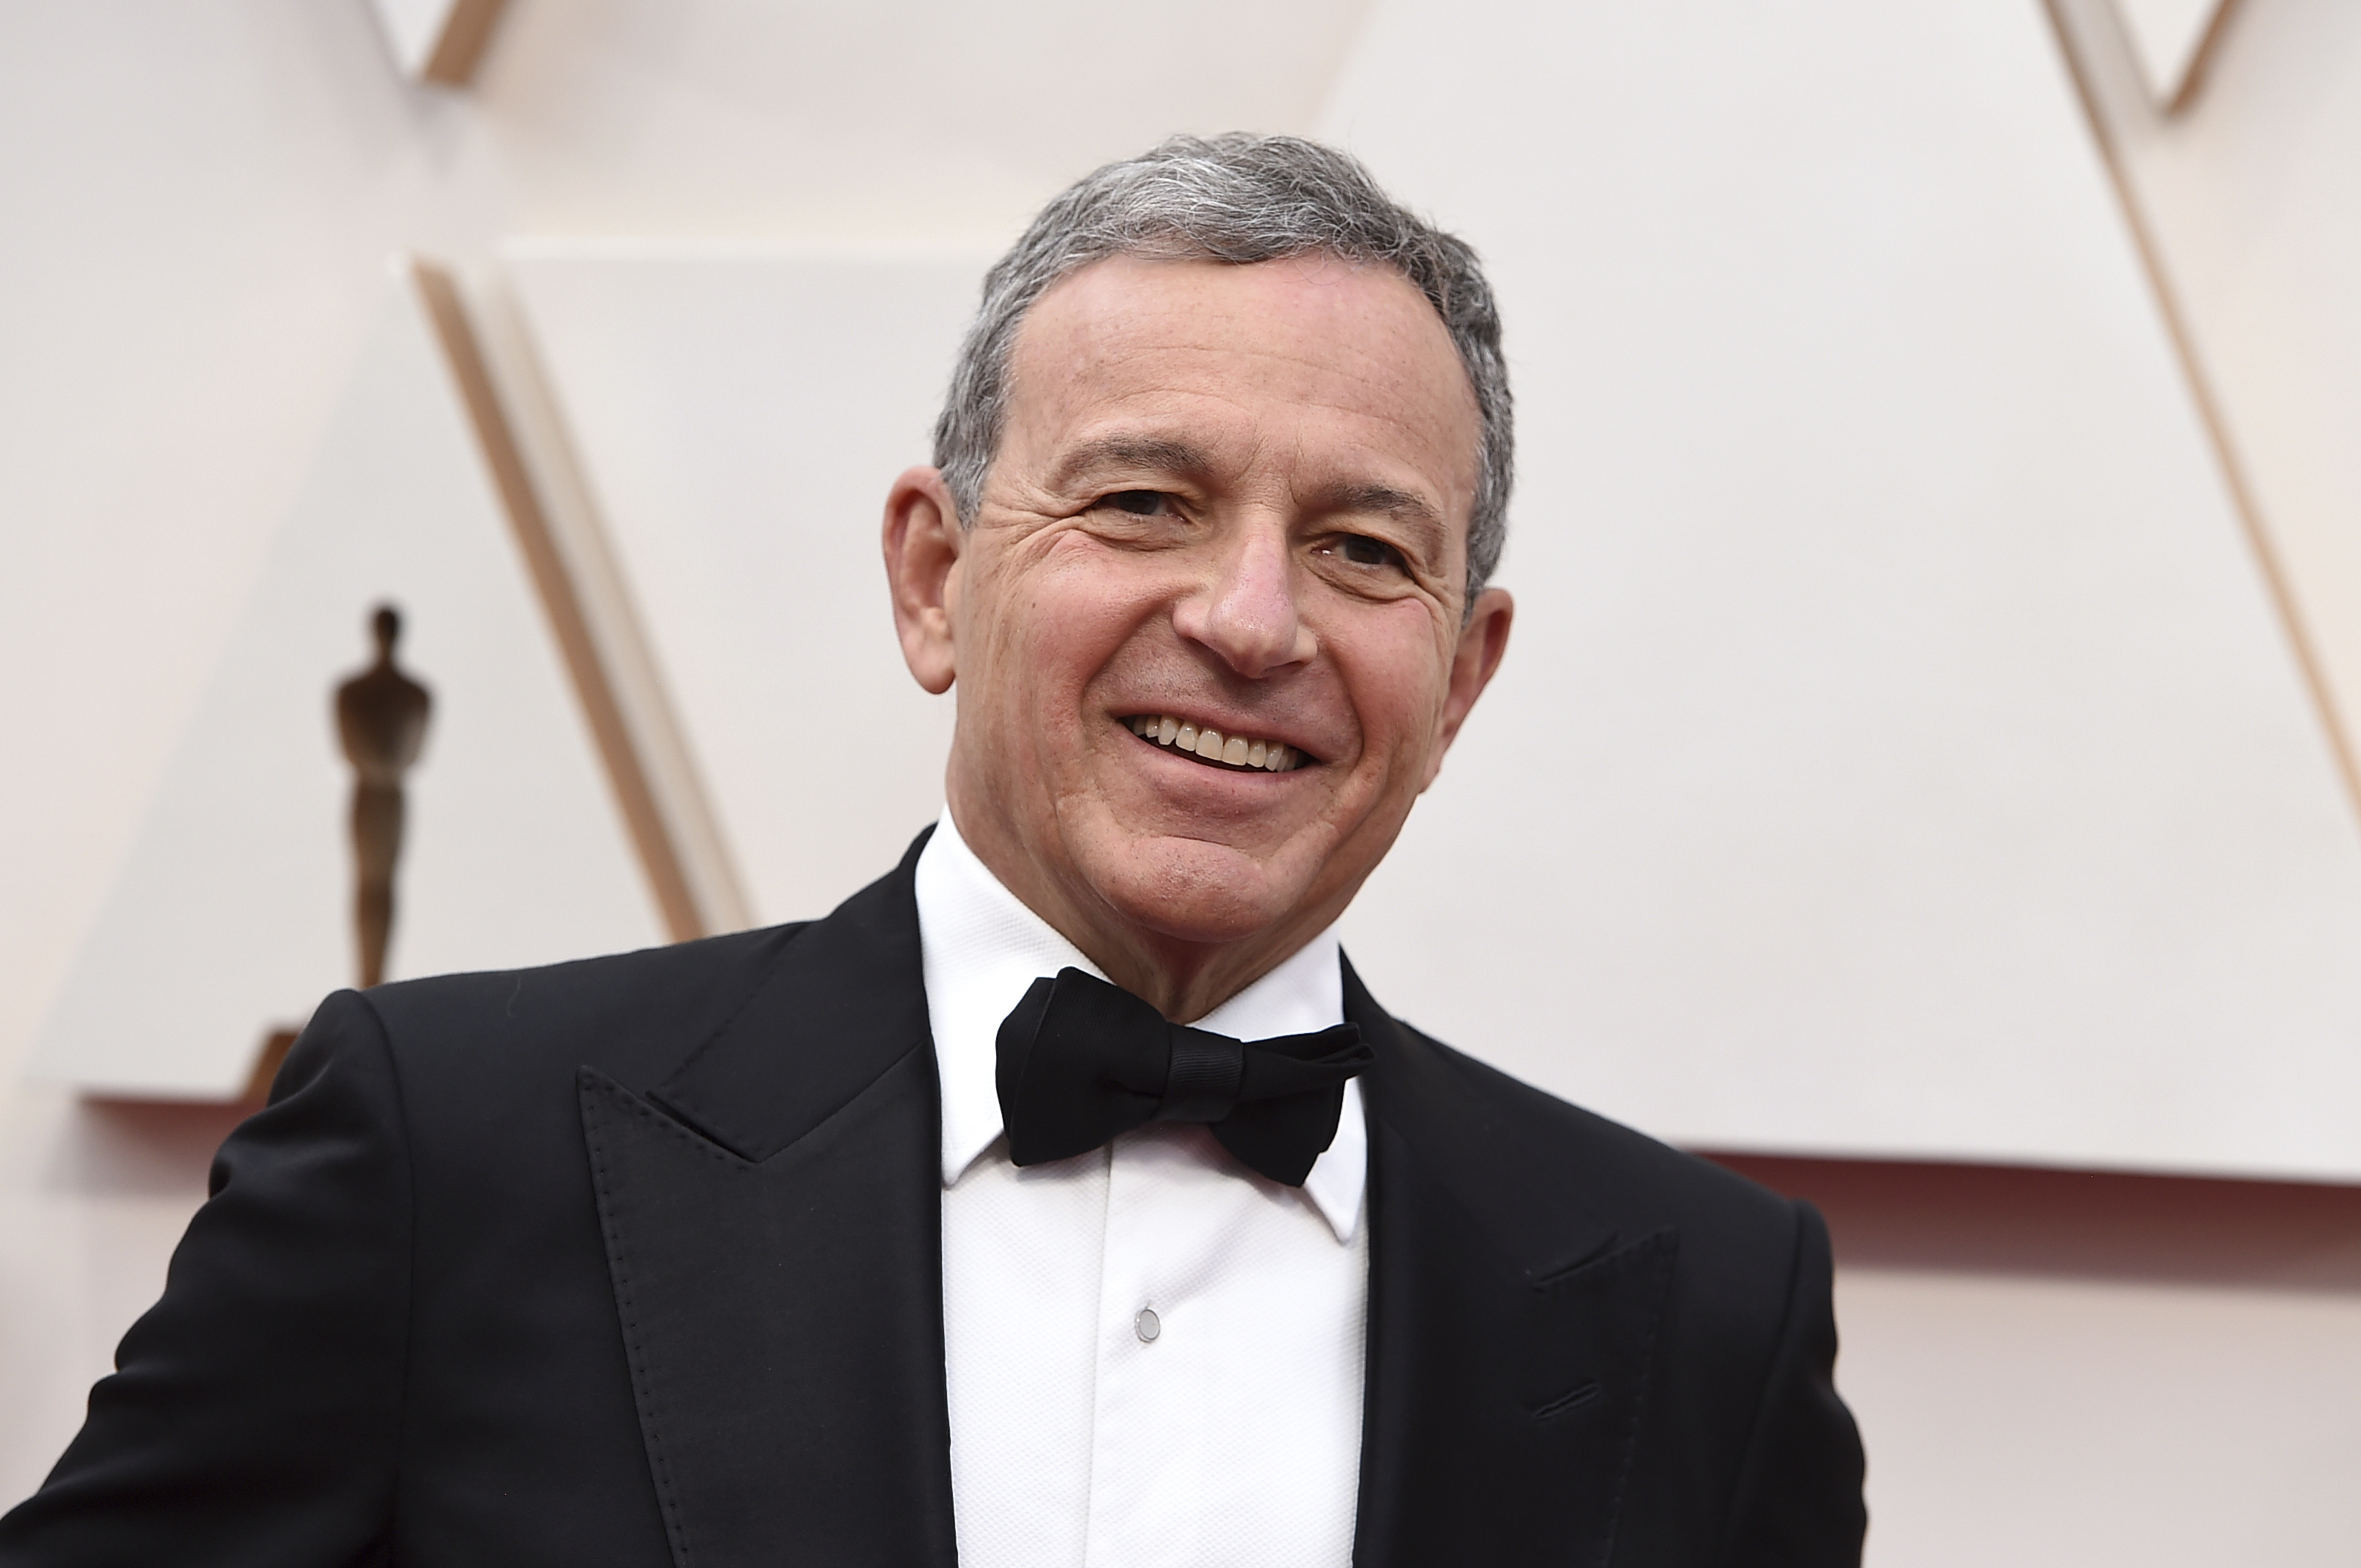 Bob Iger arrives at the Oscars on Sunday, Feb. 9, 2020, at the Dolby Theatre in Los Angeles. (Photo by Jordan Strauss/Invision/AP)